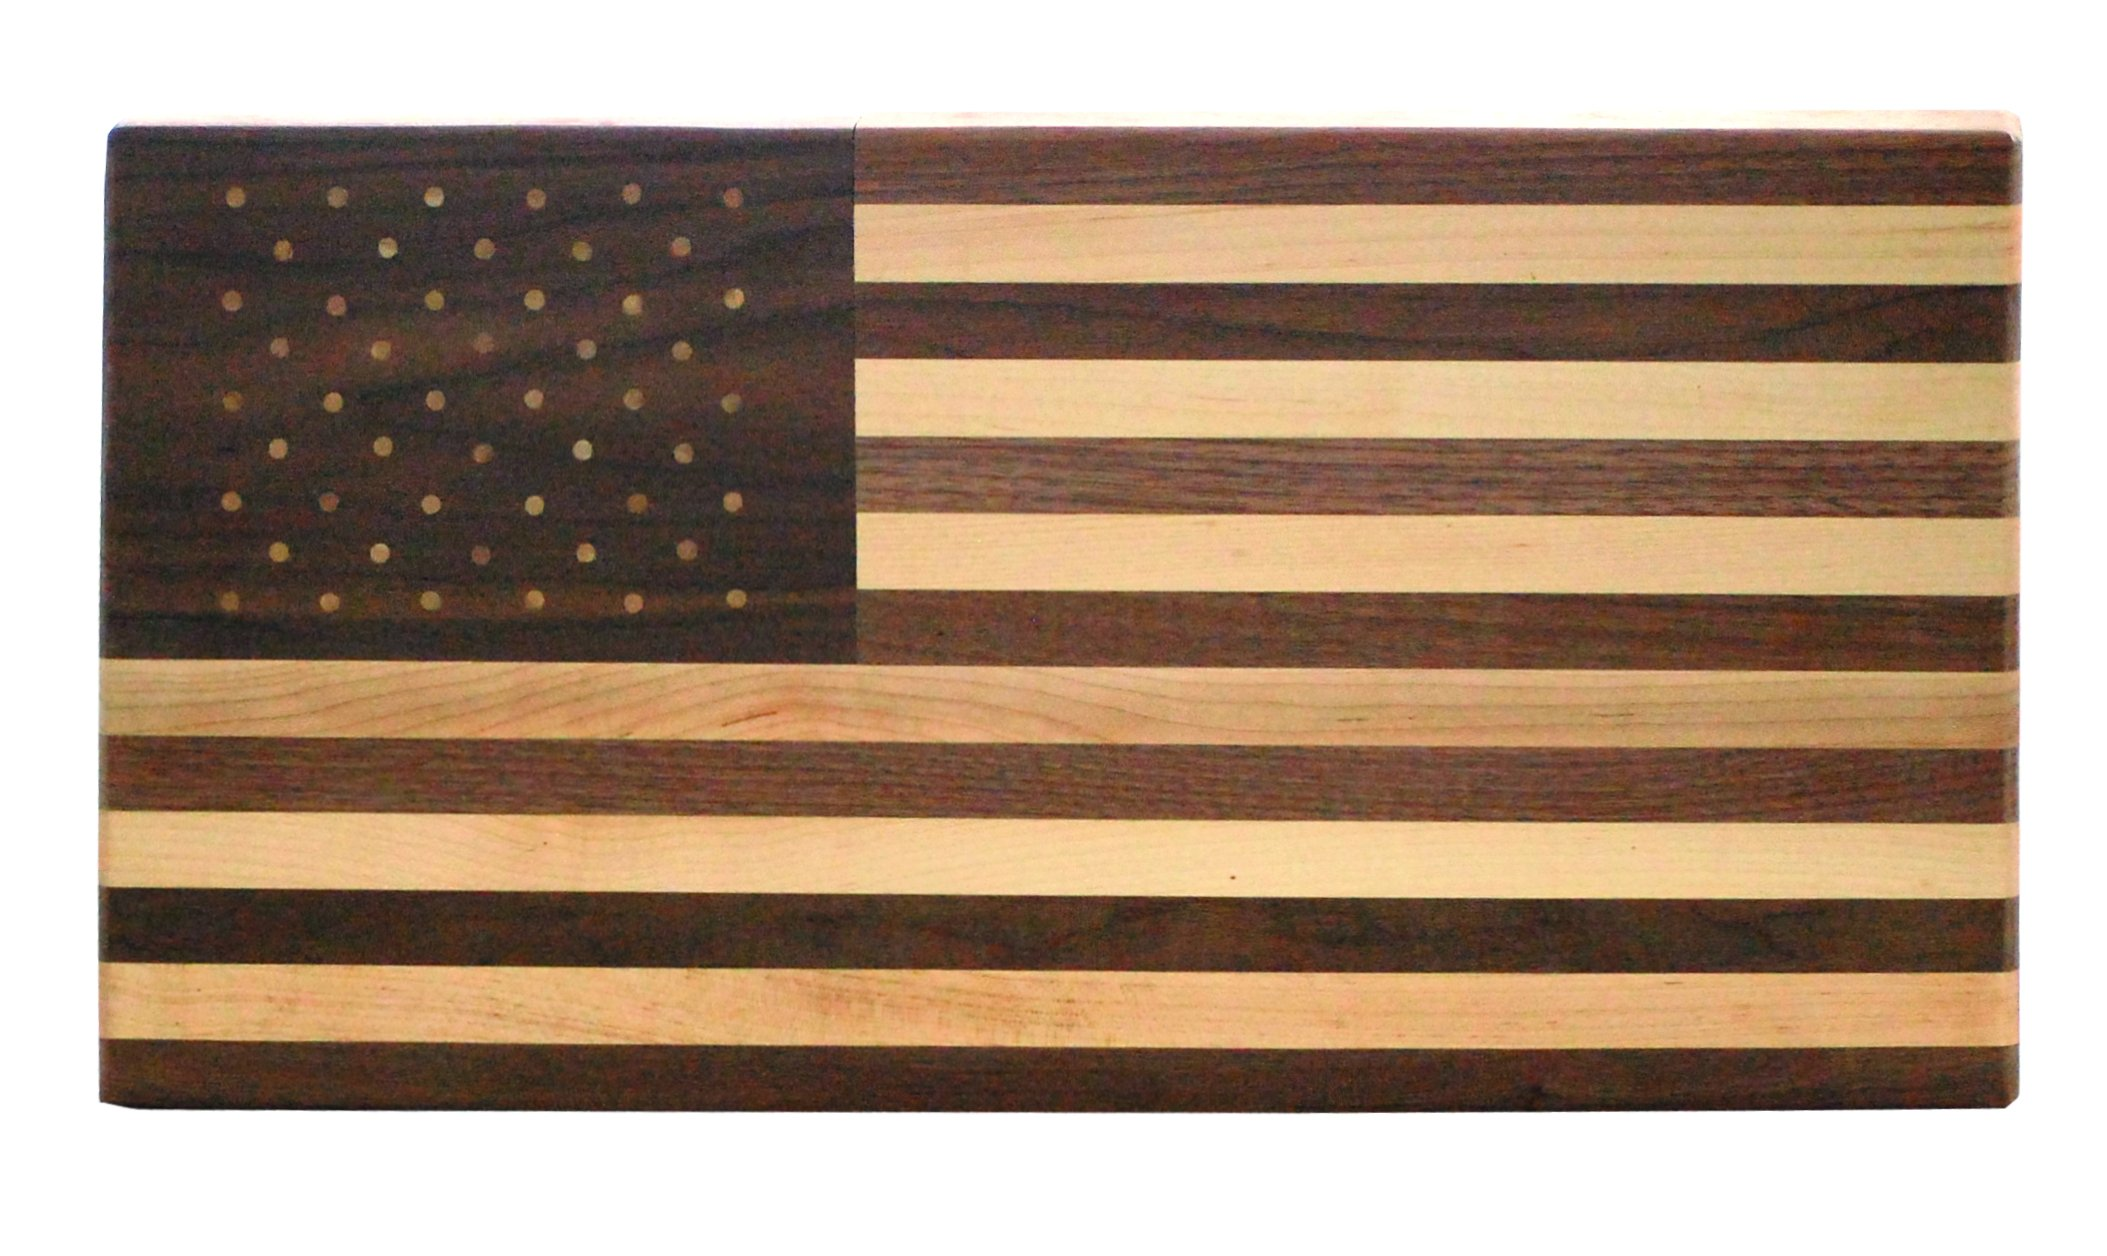 American Flag Cutting Board Amish Made Walnut and Maple Wood by VW Woodcraft (Image #1)